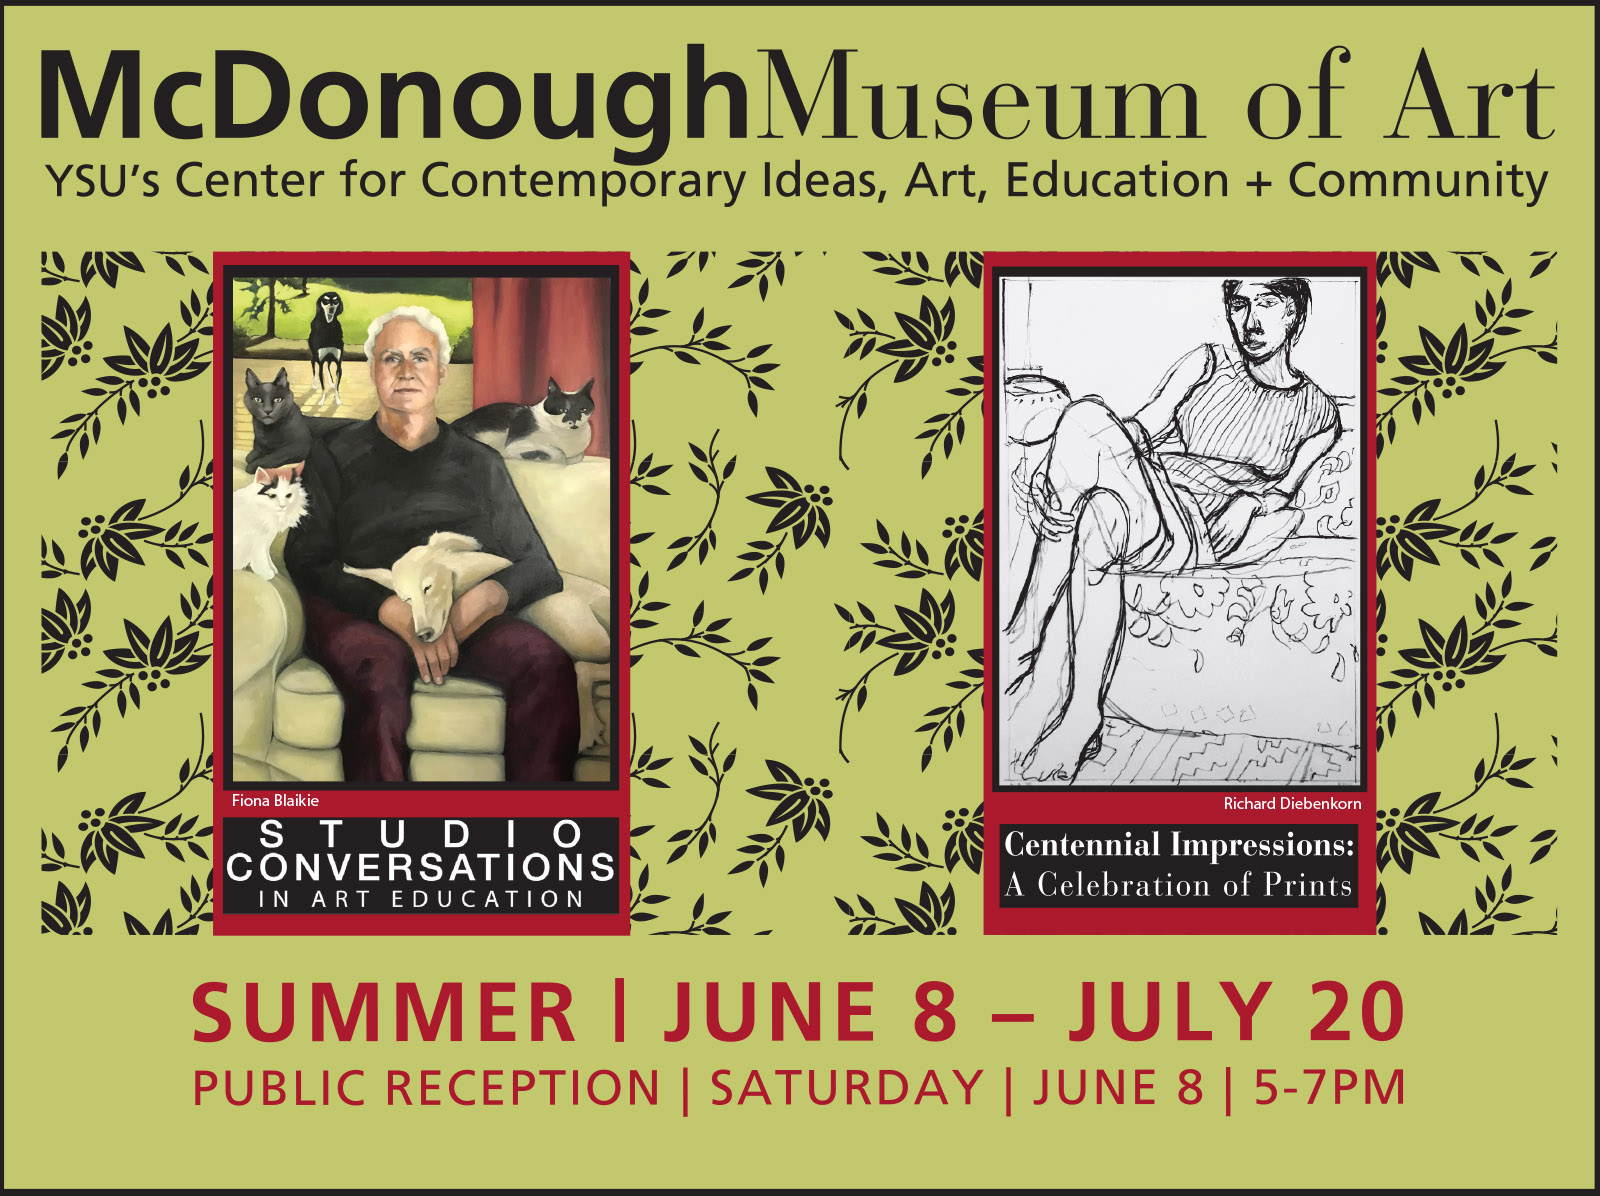 McDonough Museum of Art Events, June 8 through July 20